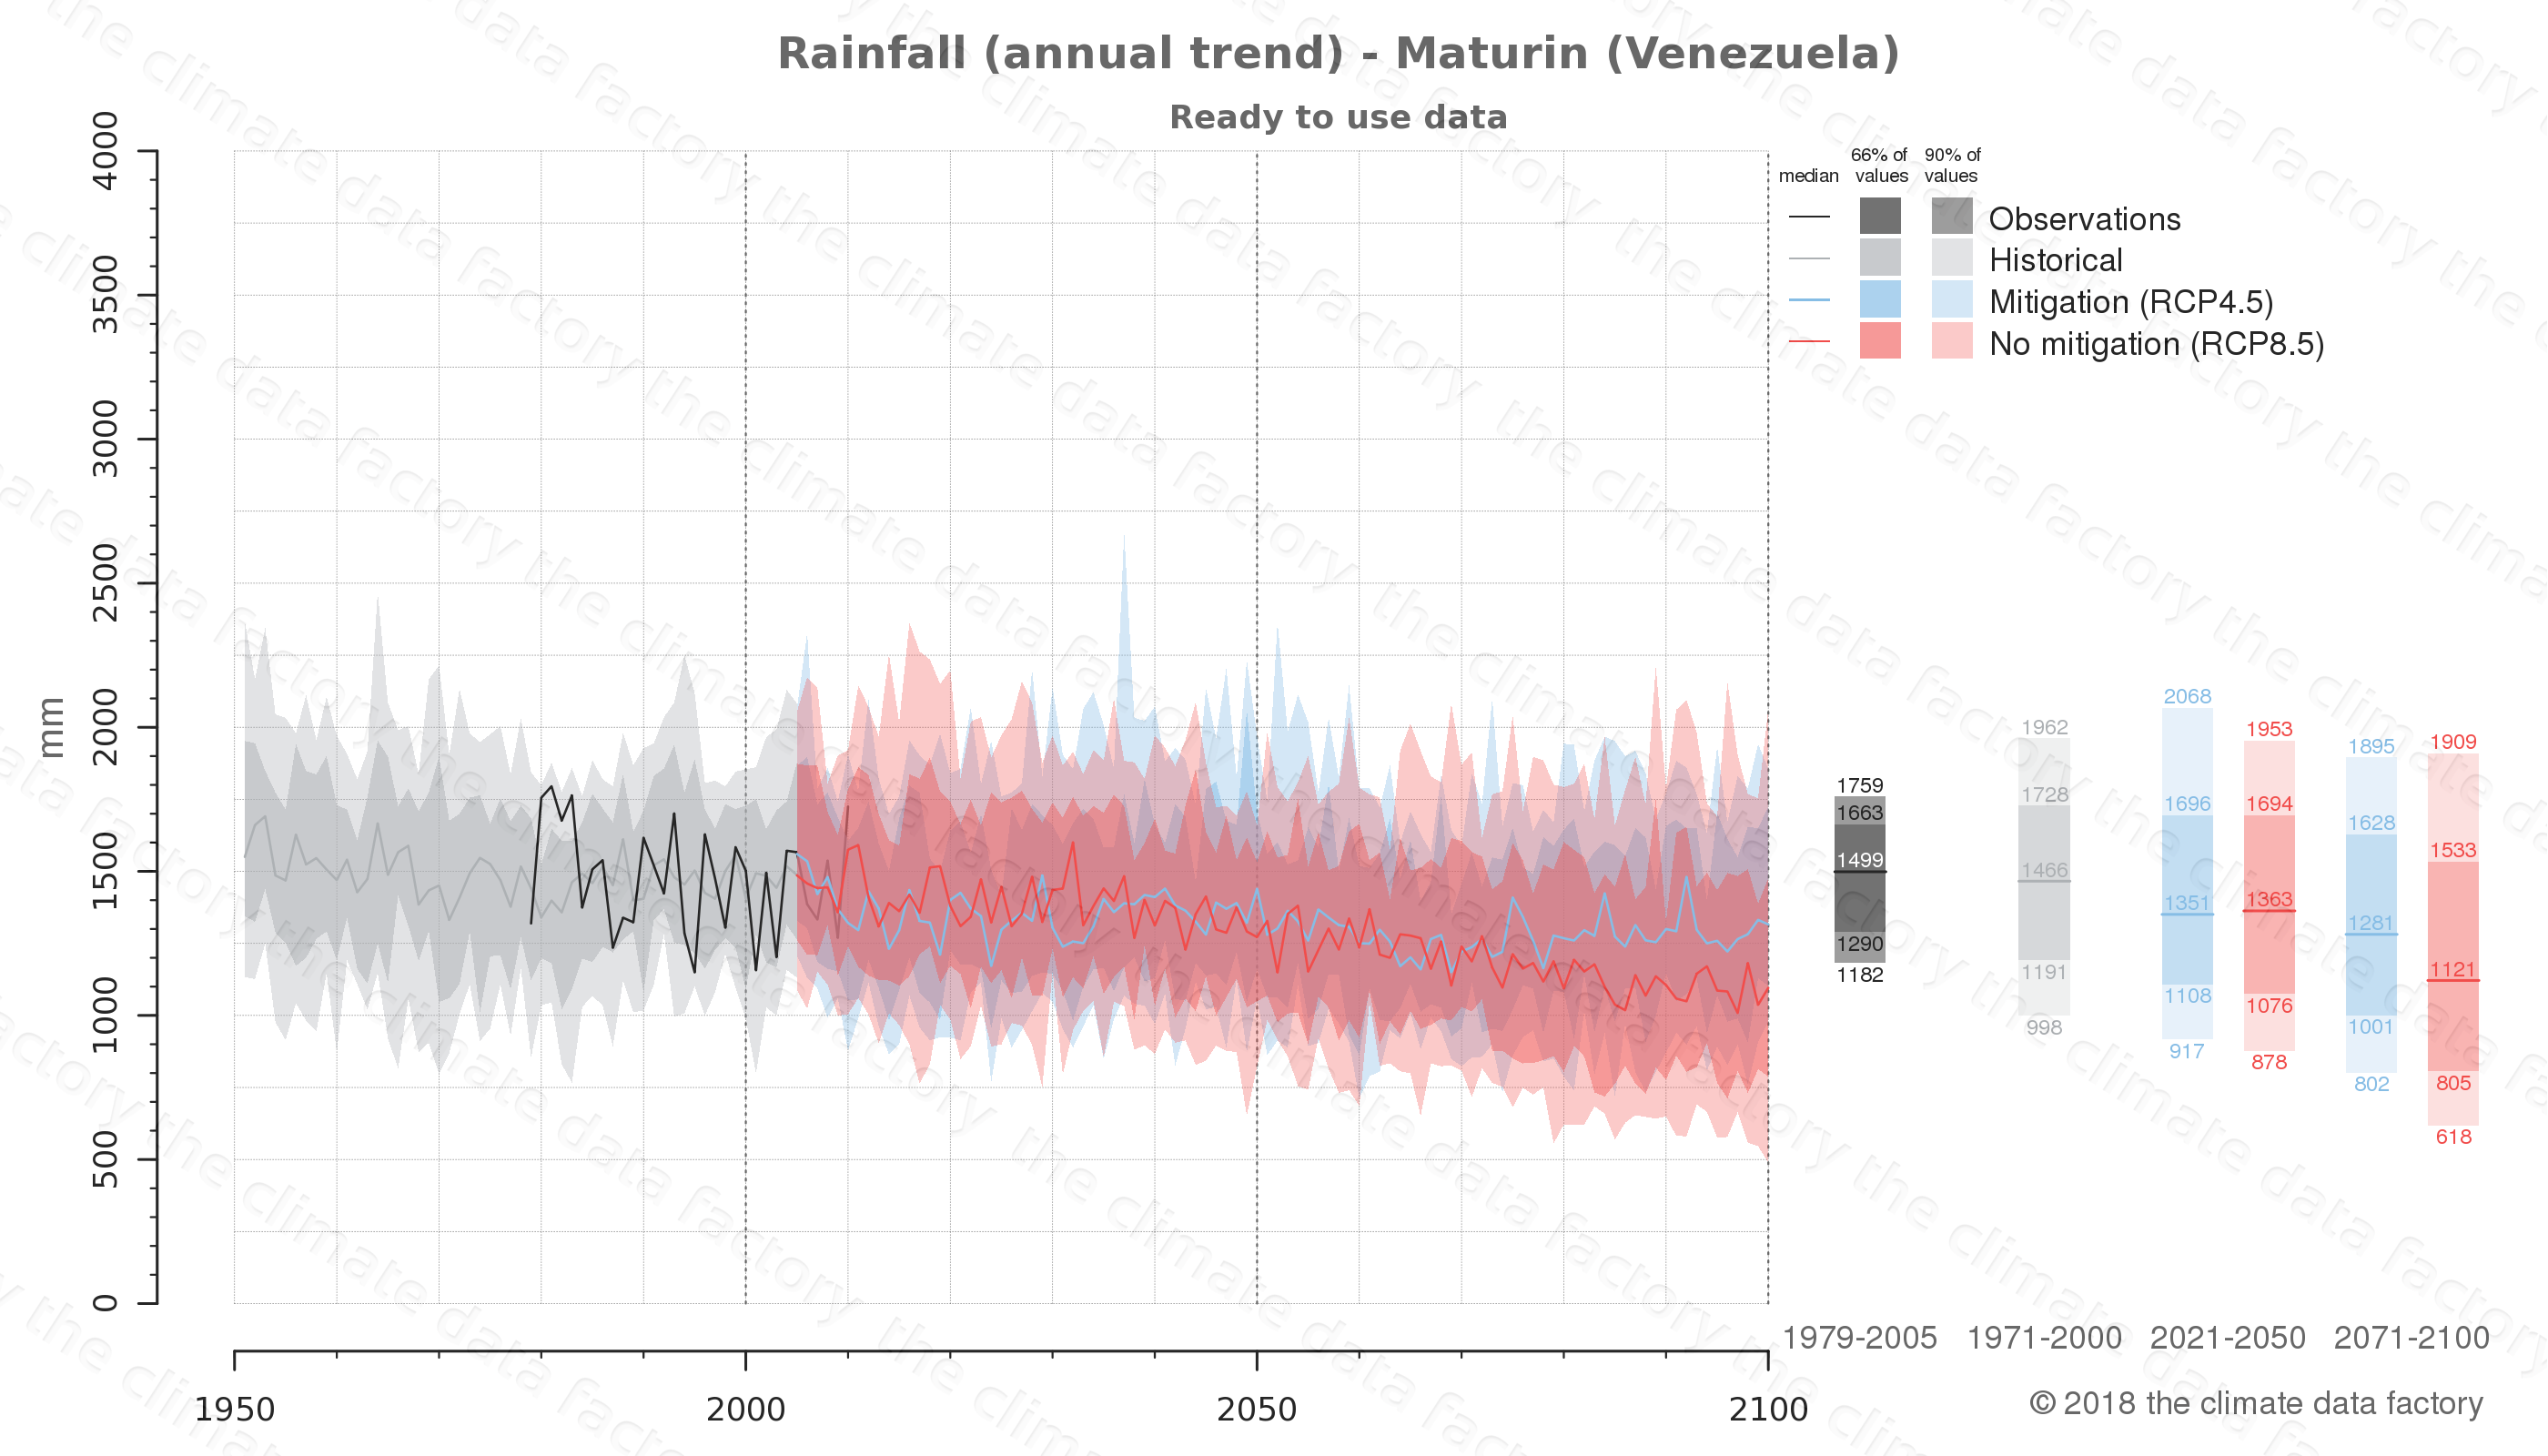 climate change data policy adaptation climate graph city data rainfall maturin venezuela